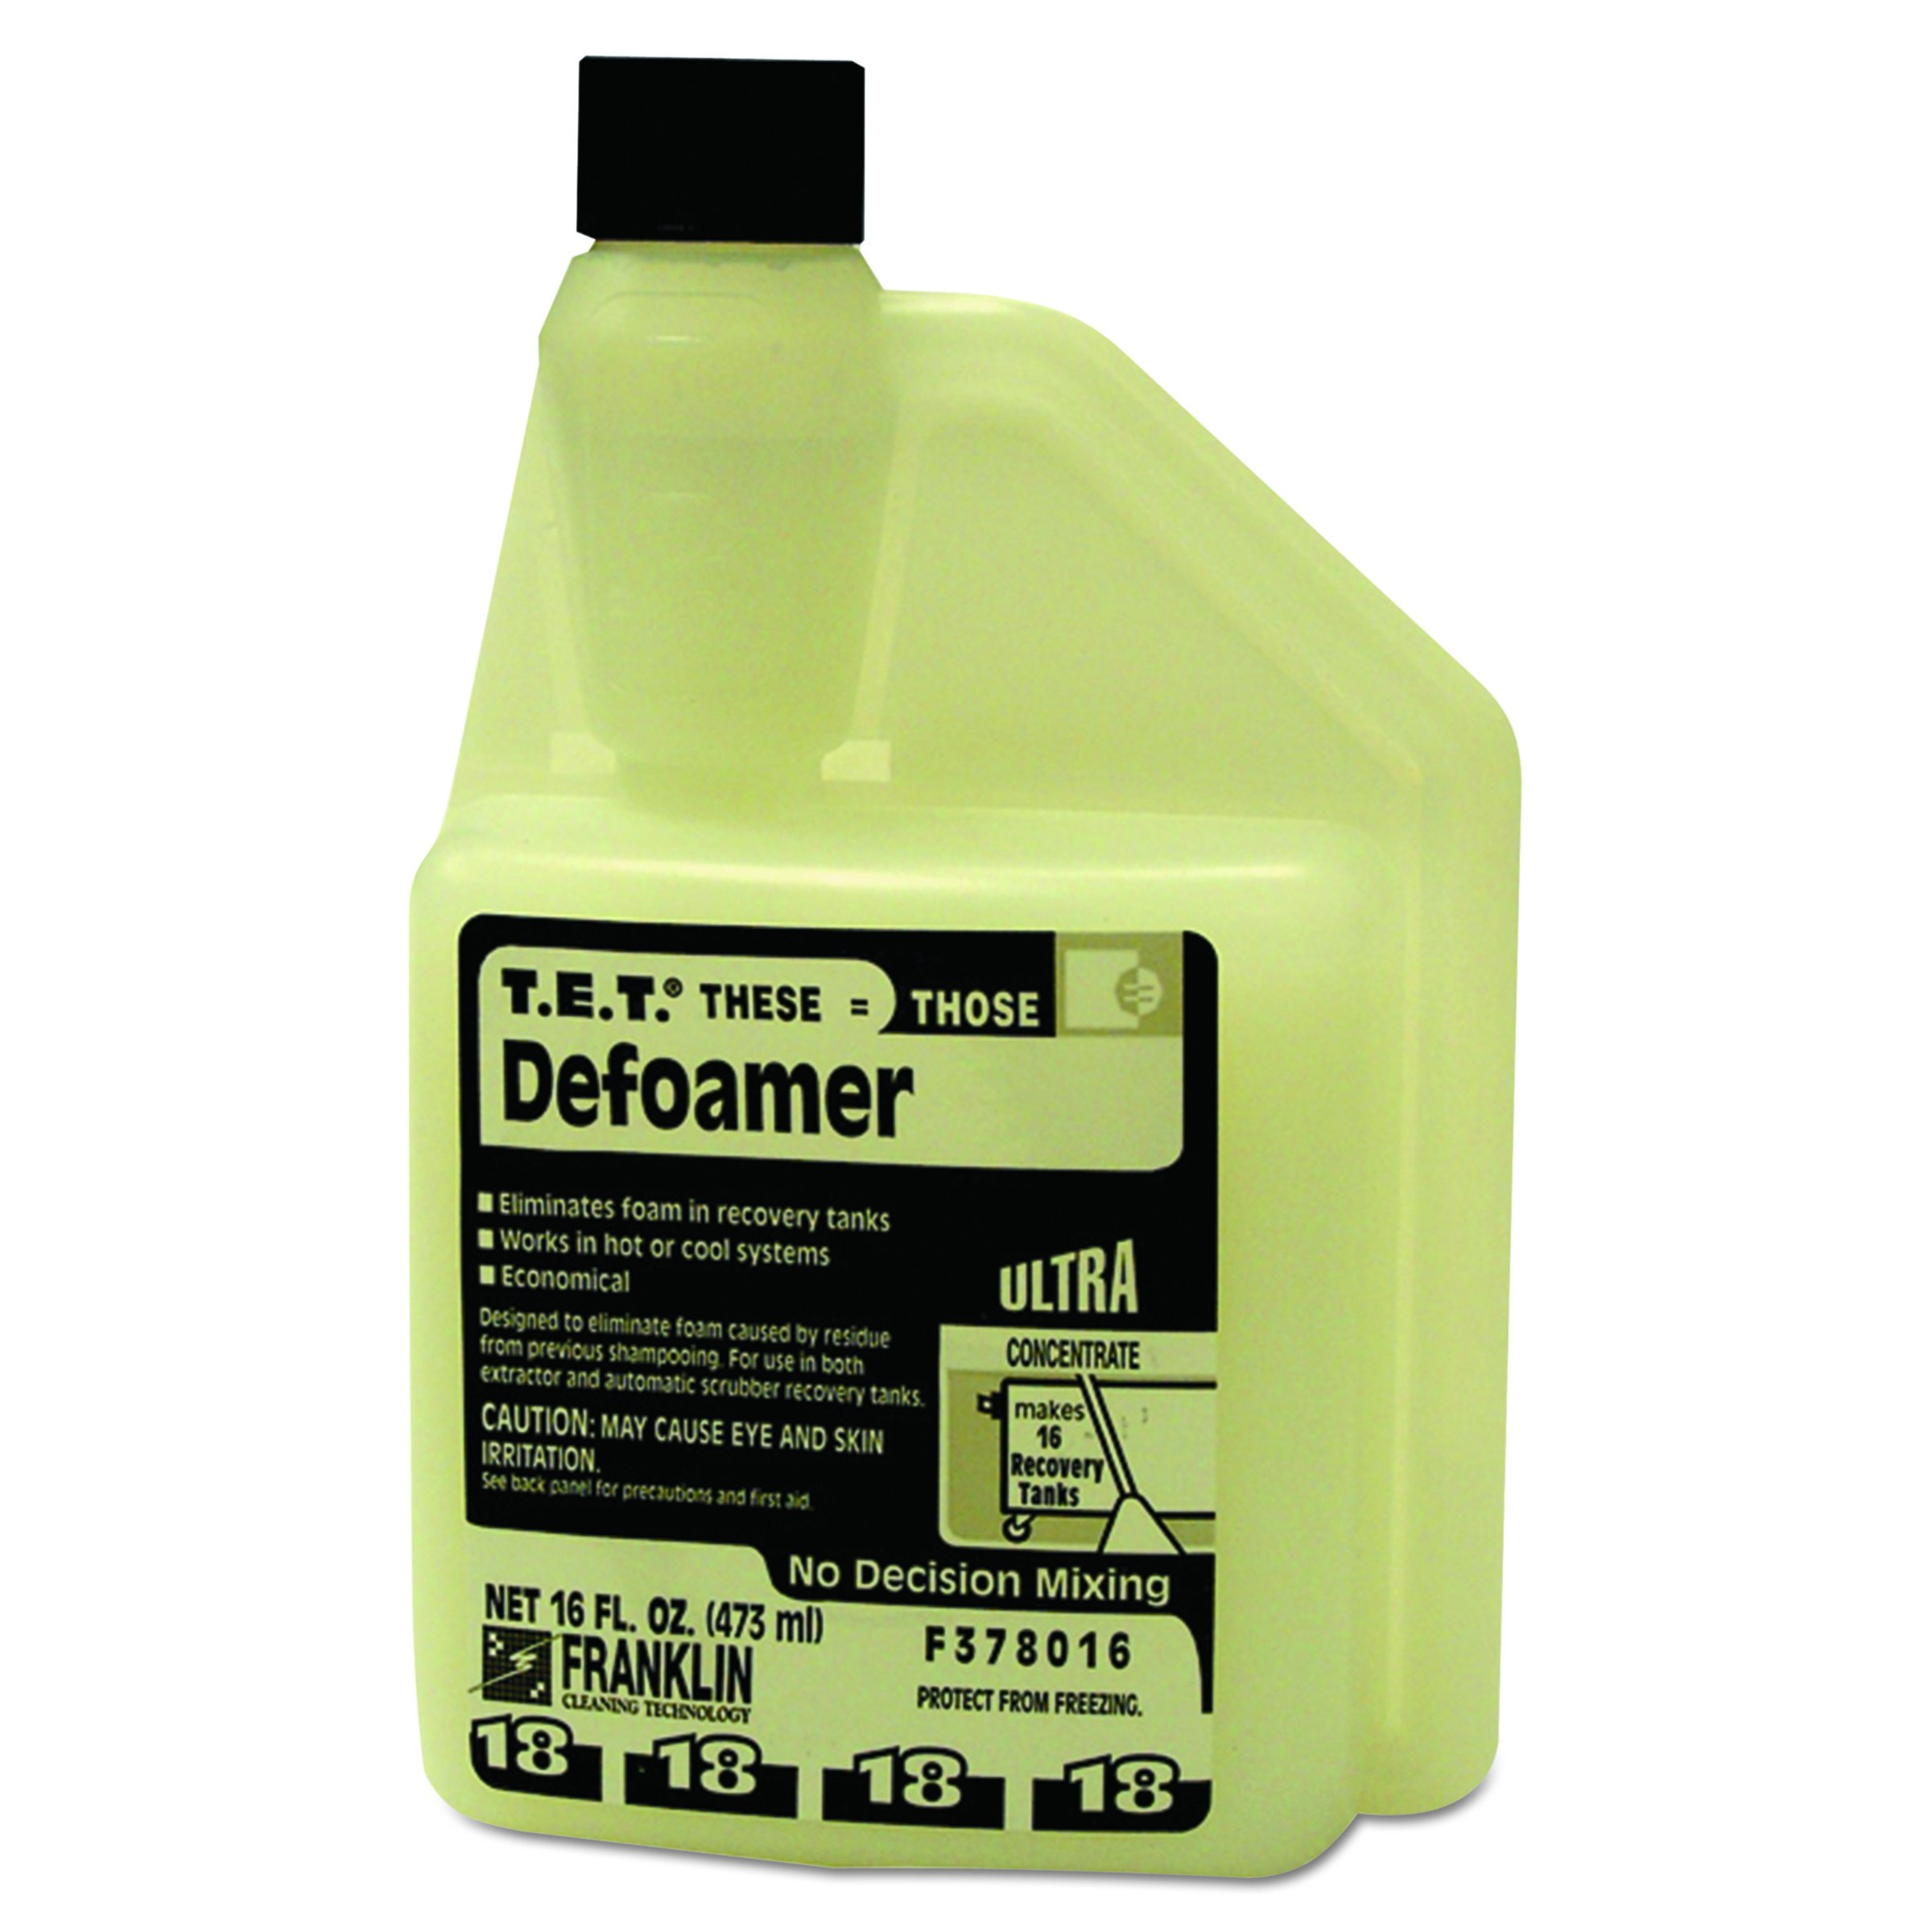 Franklin Cleaning Technology F378016 T.E.T. #18 Defoamer, 16 Ounce (Pack of 2)